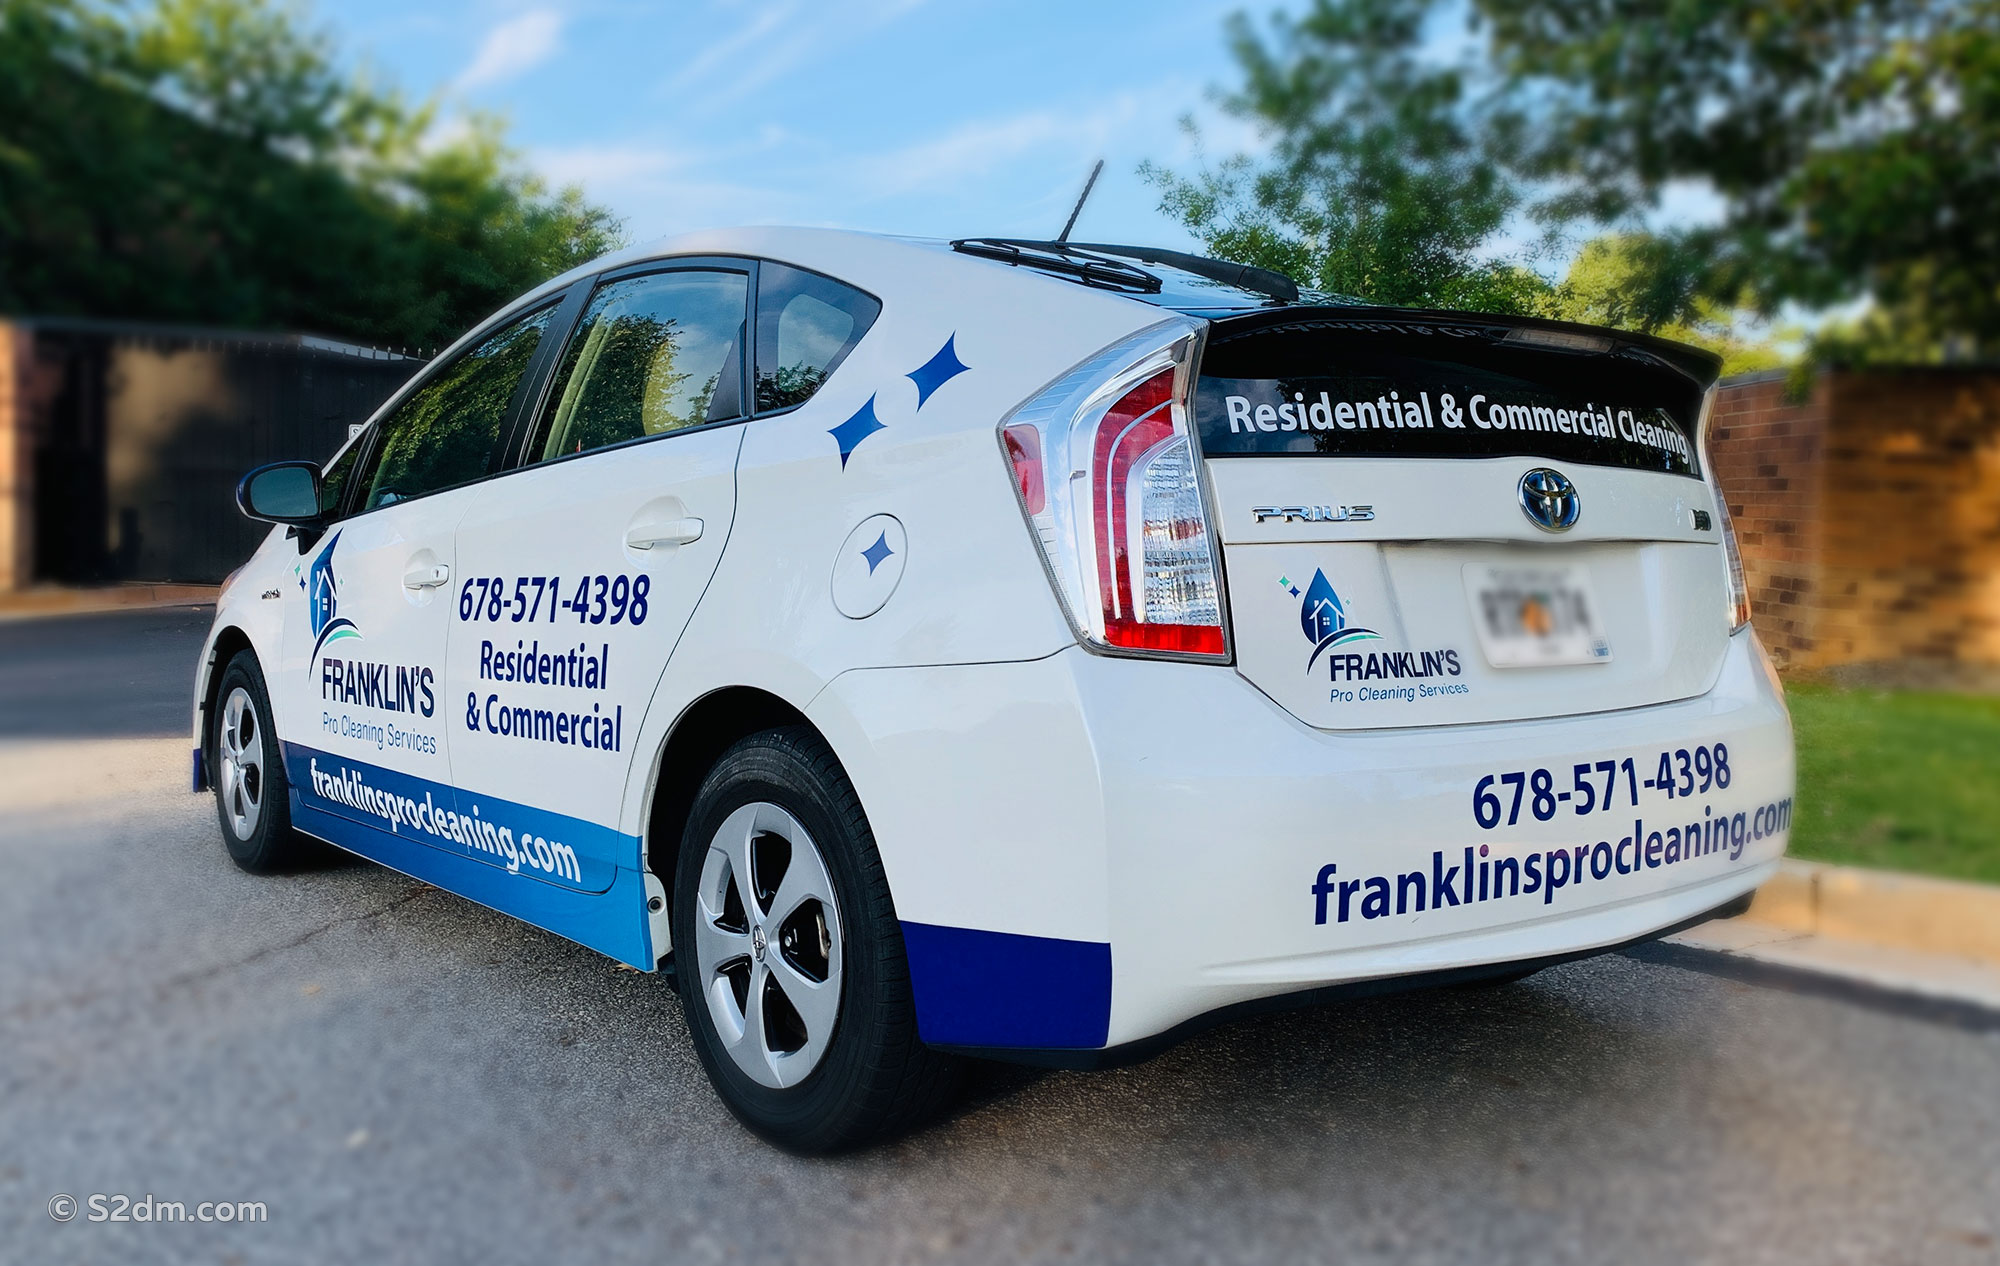 Franklins Pro Cleaning Services